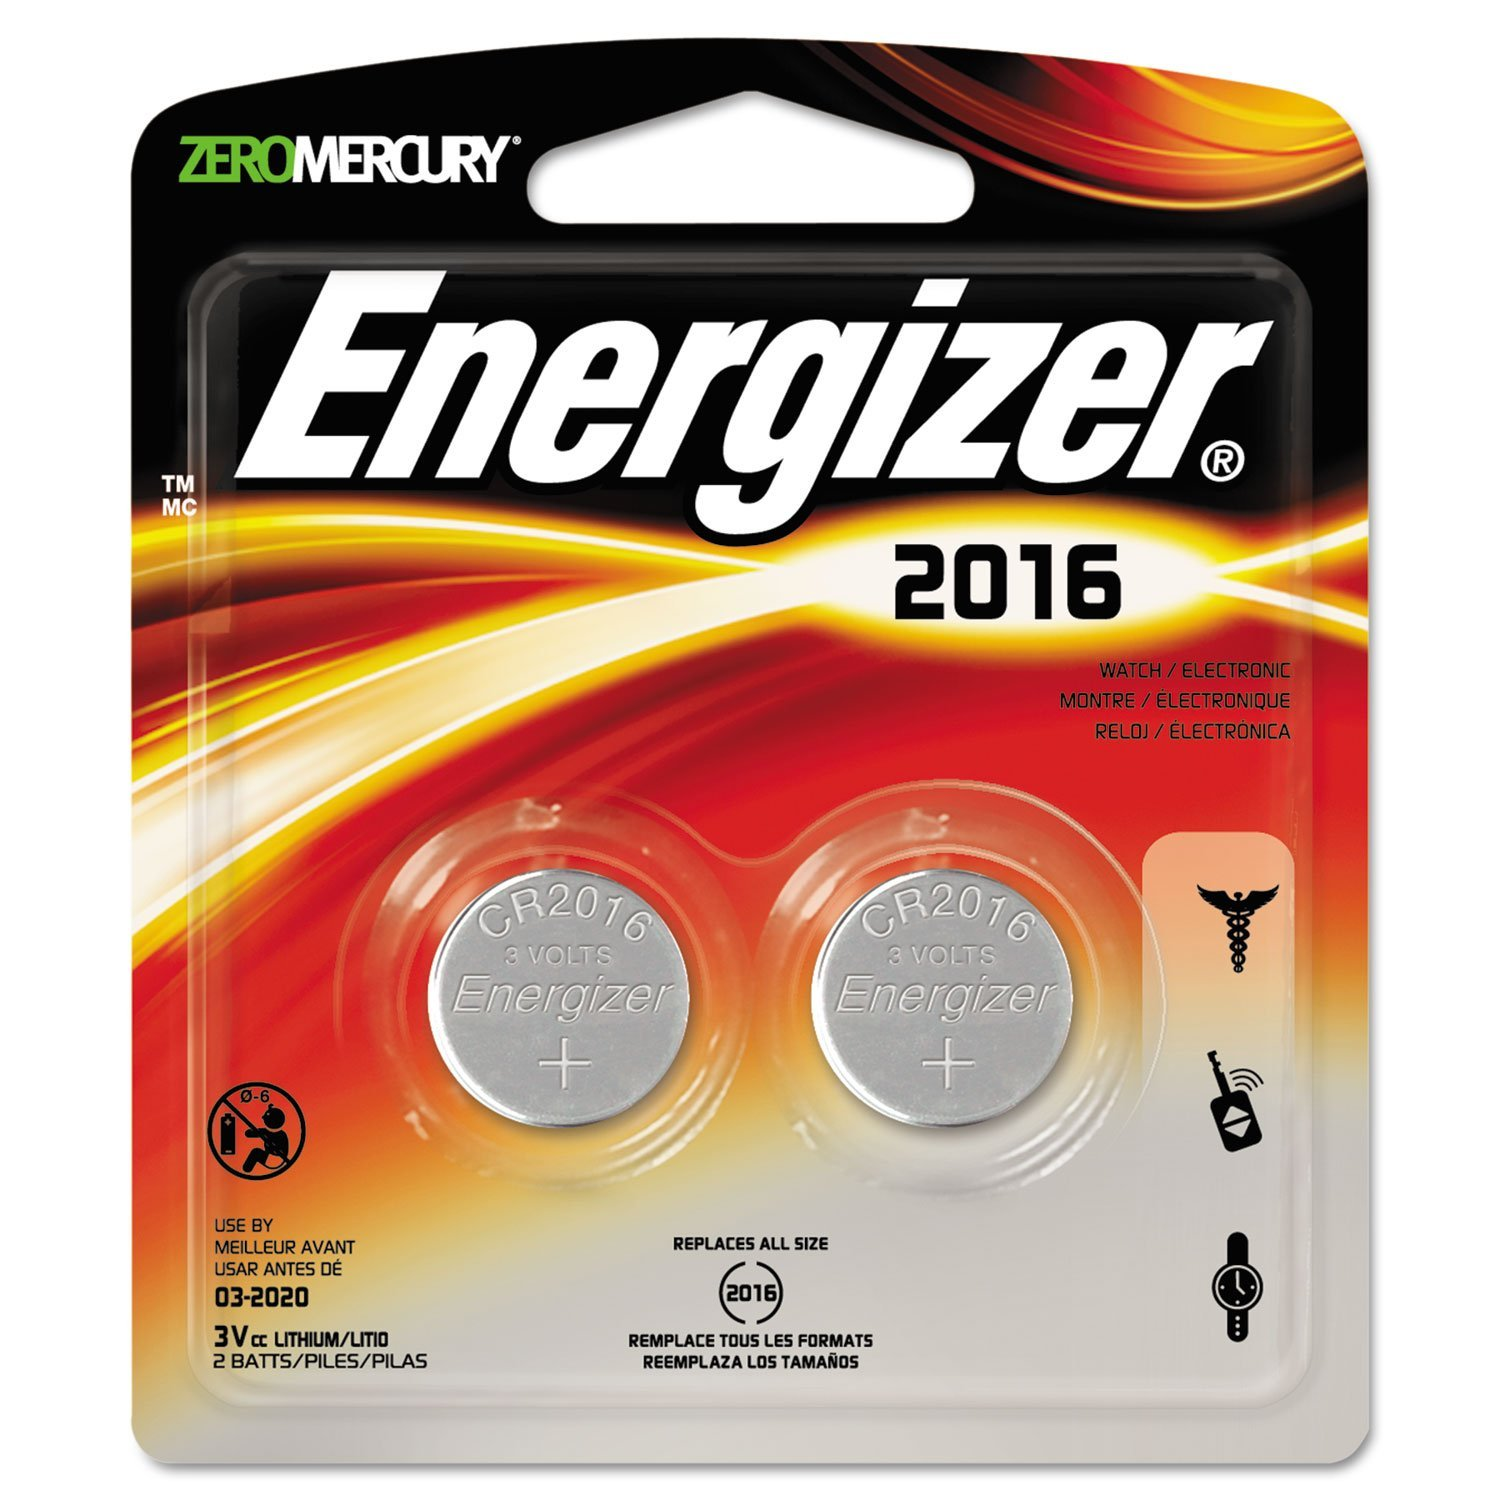 3 X Energizer Products - Lithium Batteries, 3.0 Volt, For CR2016/CR2016/SBT-11/LF1/4V - Sold as 1 CD - Lithium 3.0 volt batteries are designed for use in watches, calculators, PDAs, electronic organizers, keyless entry devices, LED lights, sporting goods such